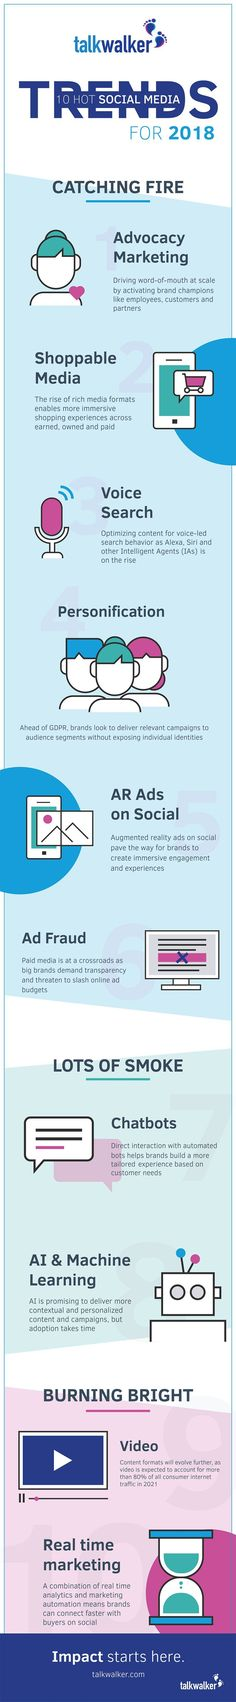 #SocialMedia in 2018: 10 Hot Trends to Get Ahead of Your Competition [Infographic]